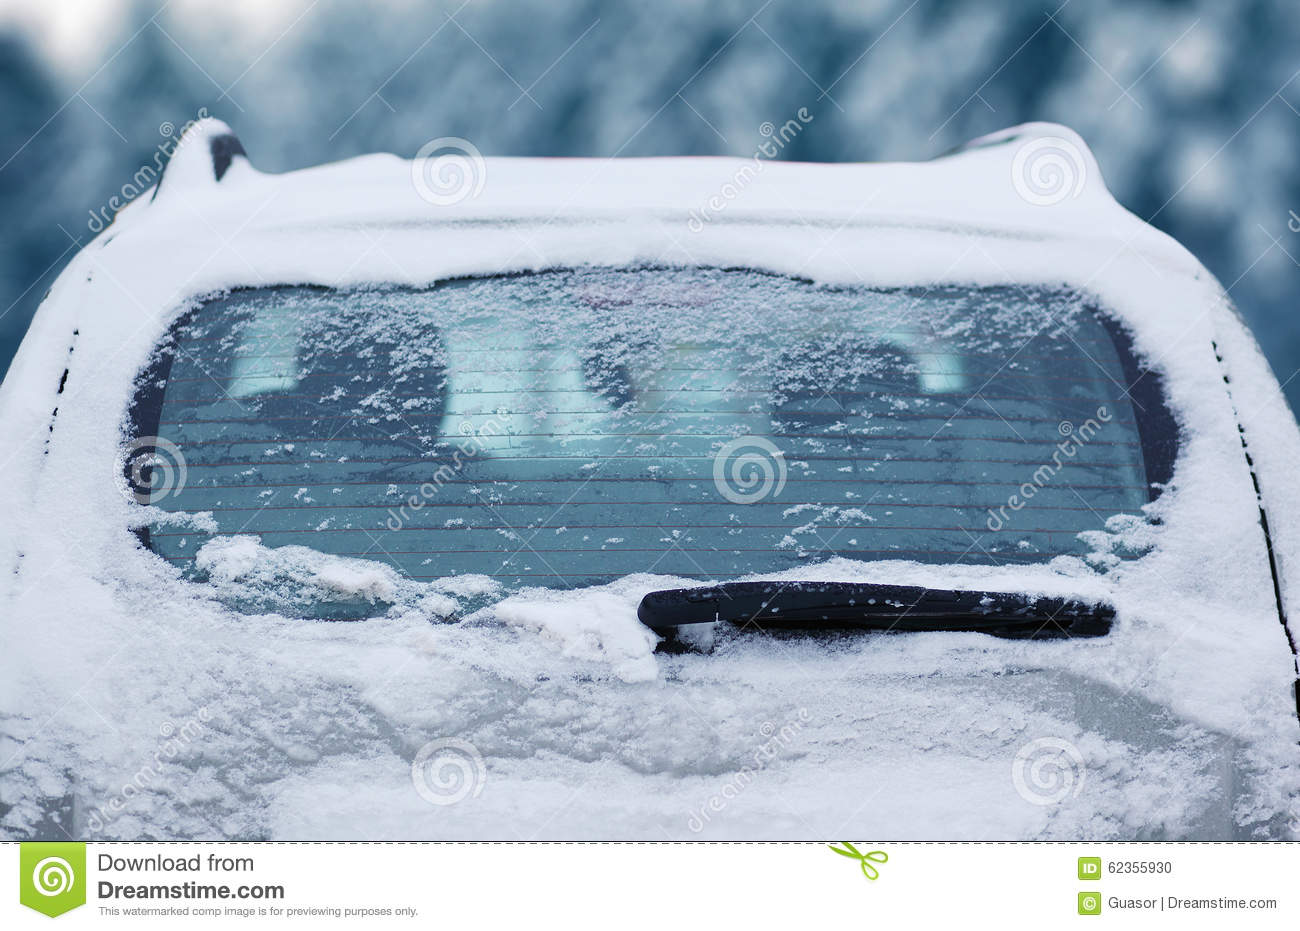 how to clean car windows in winter